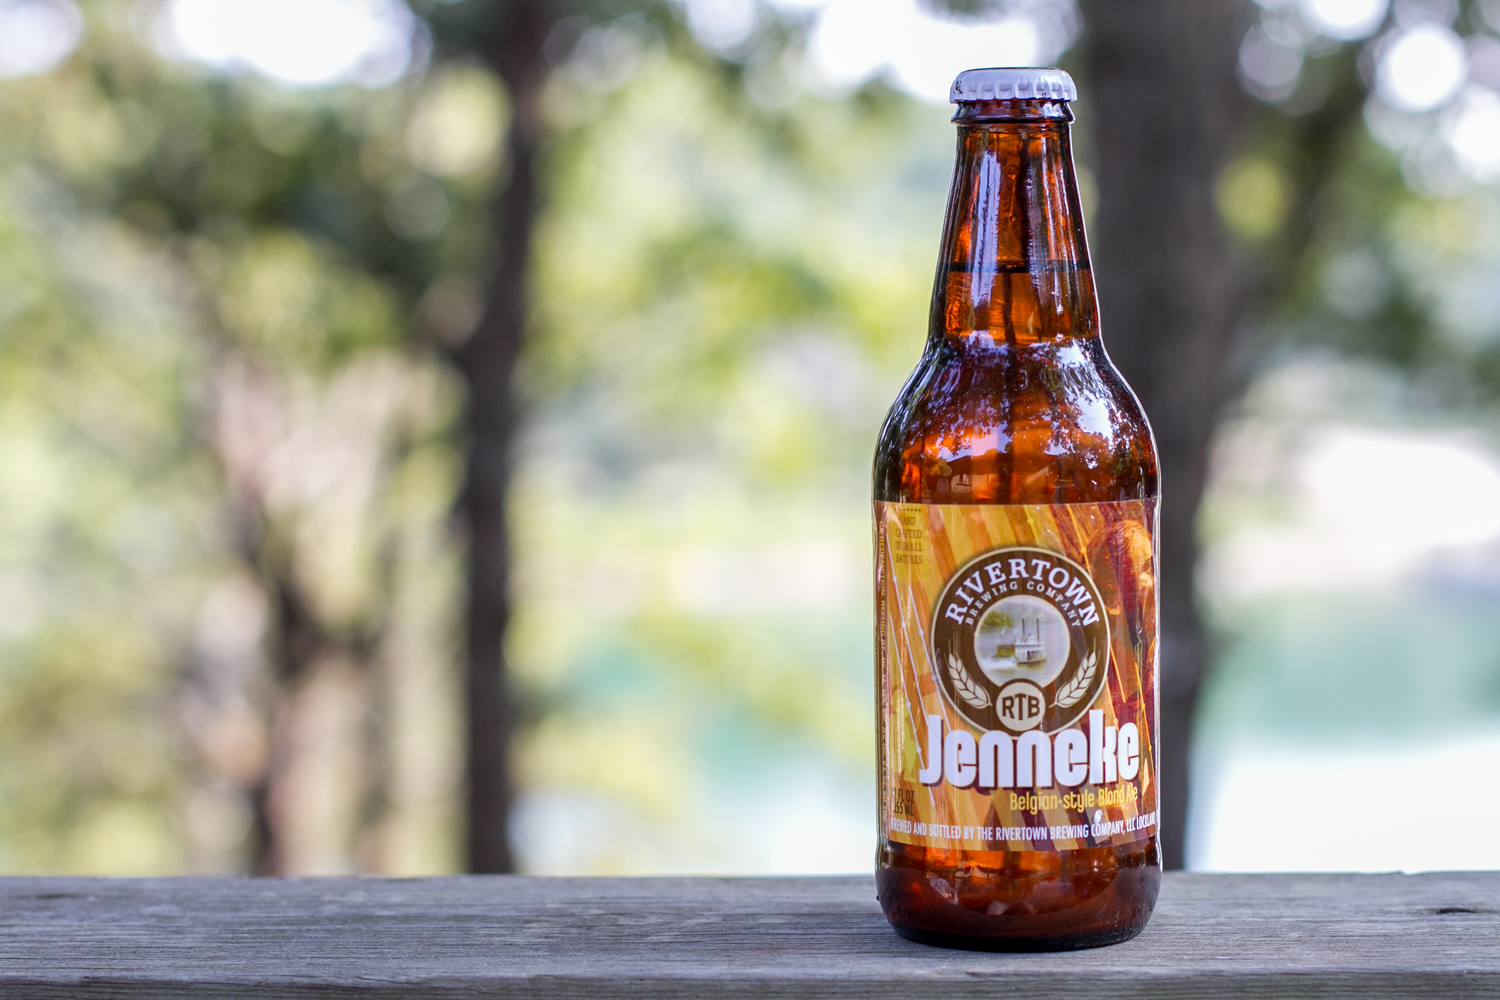 This Belgian style blond ale is a good summer beer.